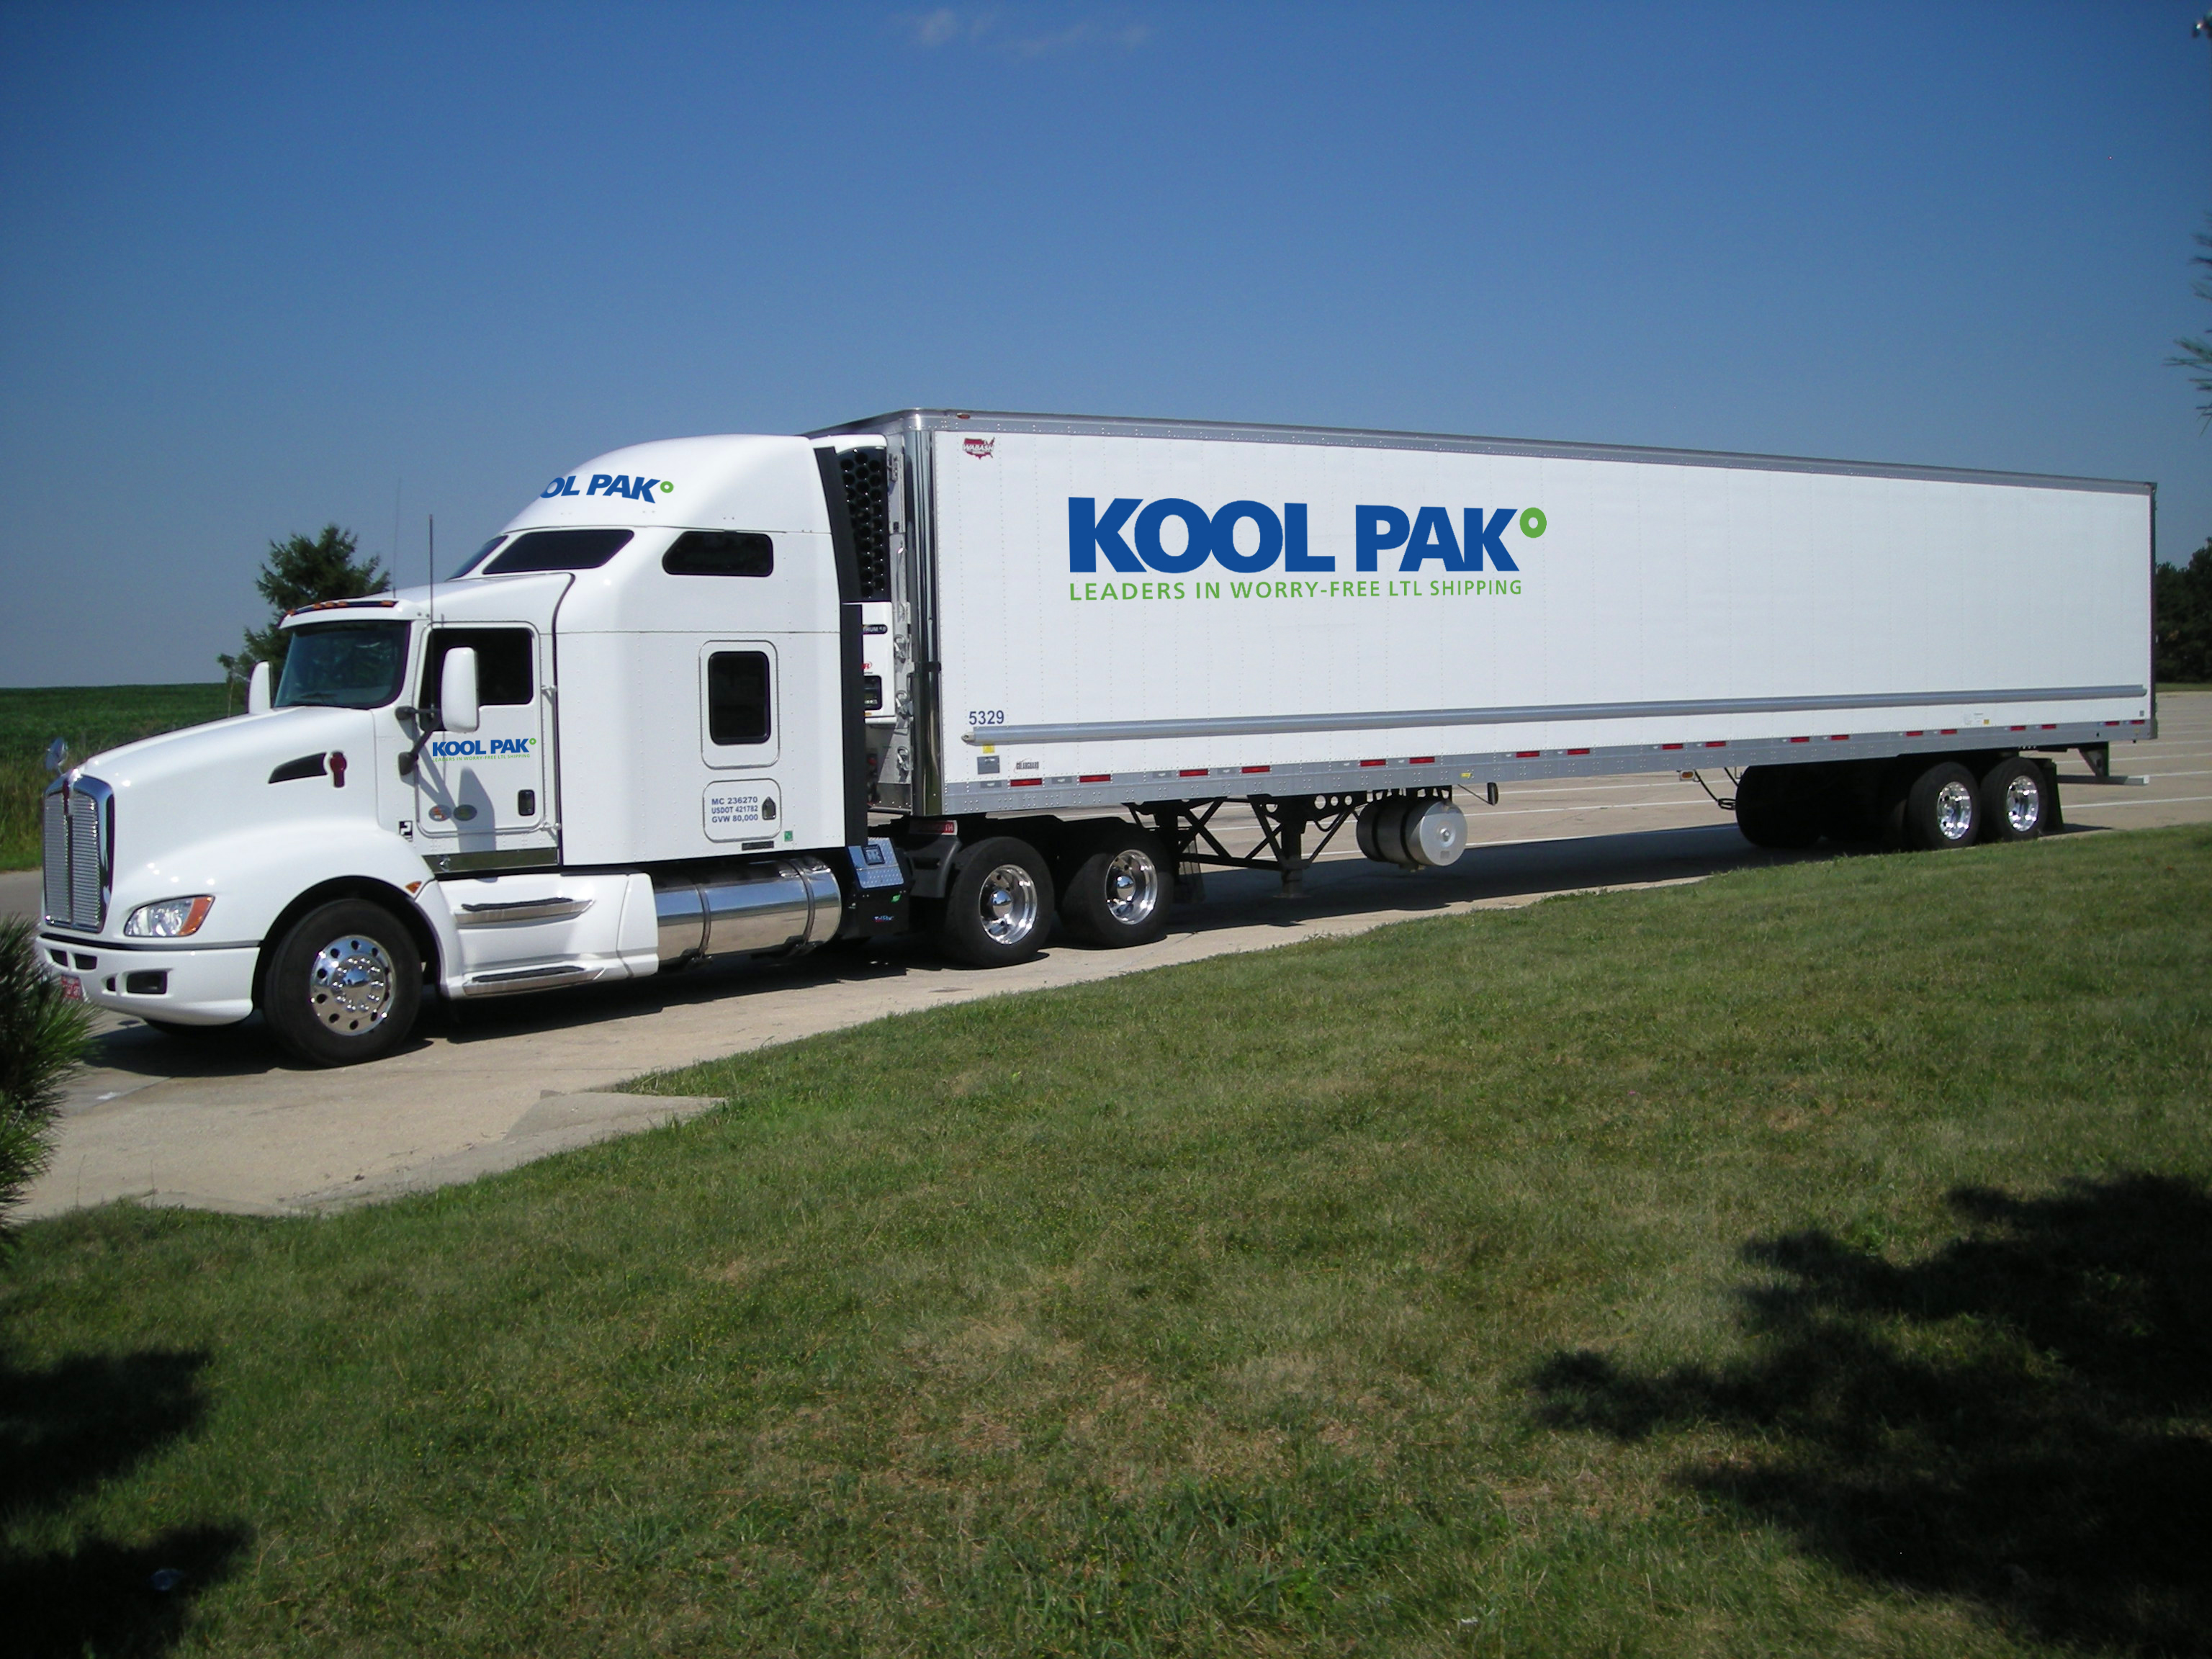 KOOL PAK° And Polar Express Transportation Expand